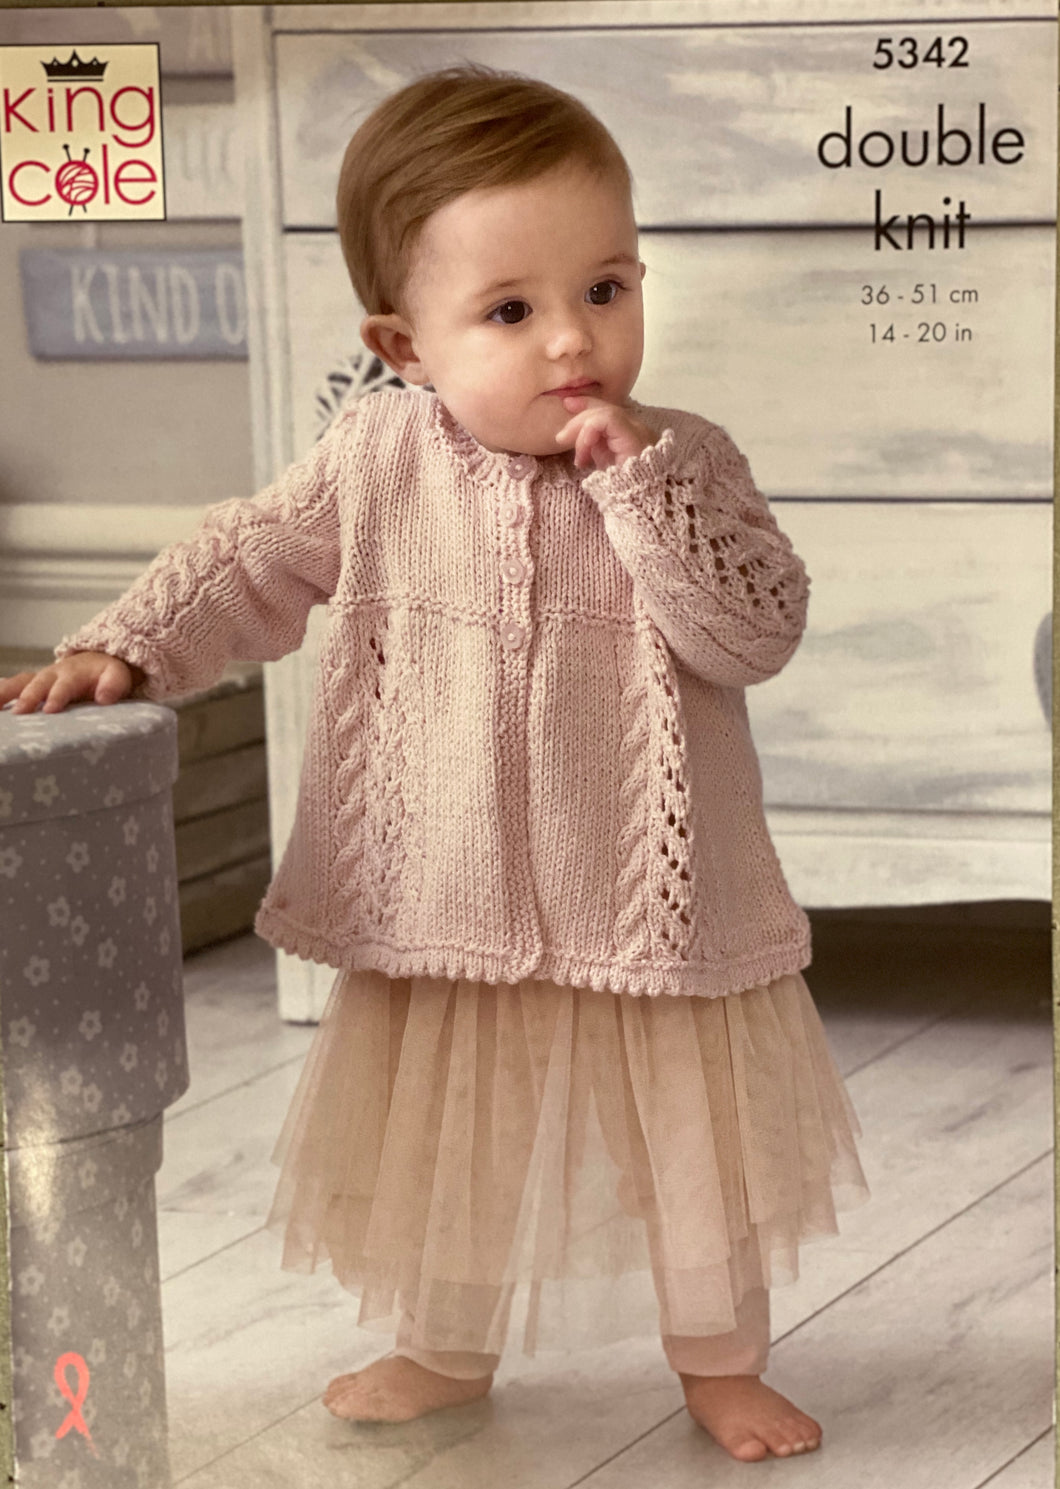 King Cole Baby and Nursery DK Pattern - 5342